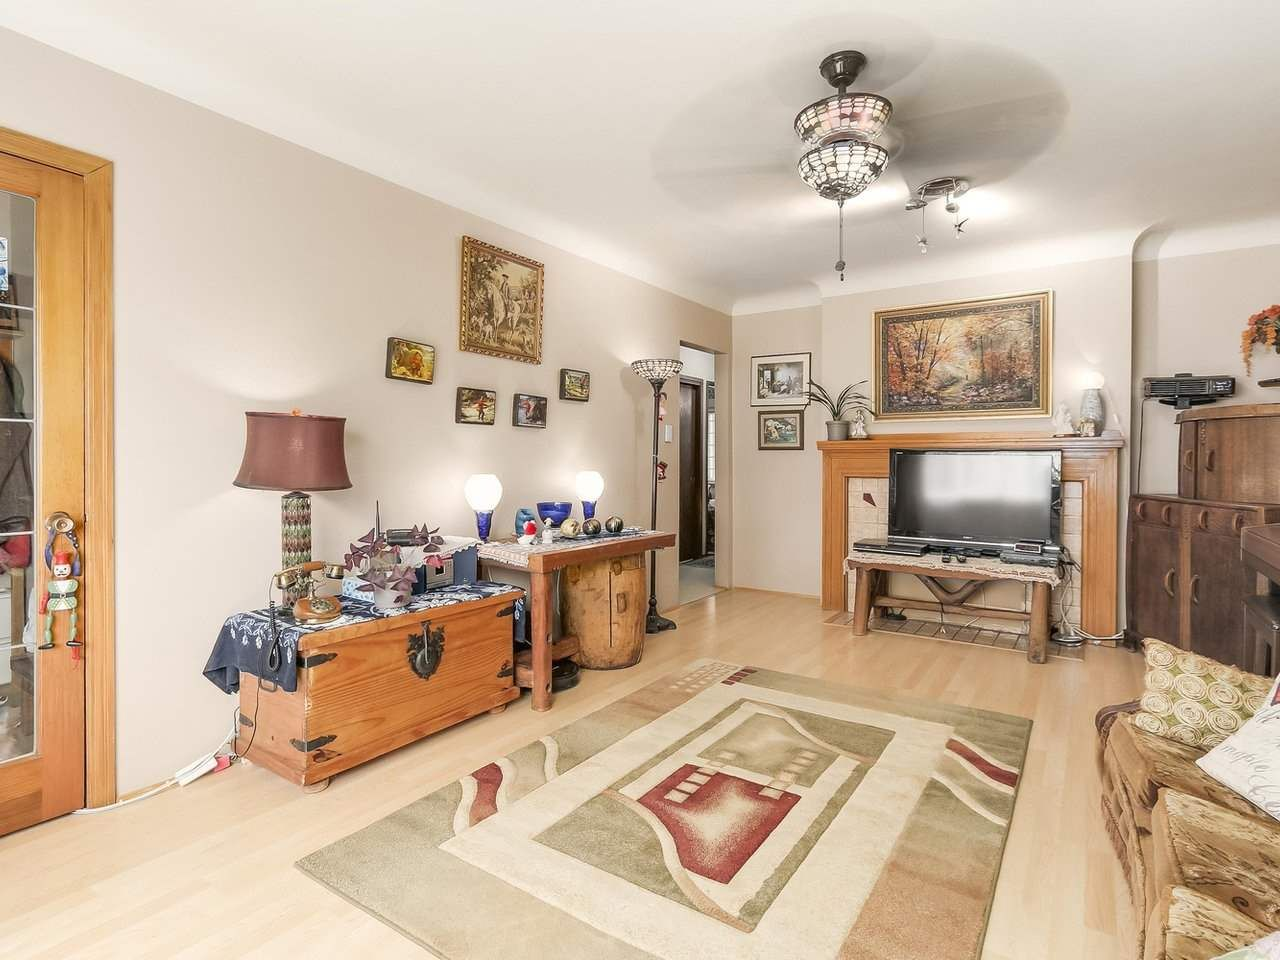 Photo 5: Photos: 165 E 55TH AVENUE in Vancouver: South Vancouver House for sale (Vancouver East)  : MLS®# R2297472